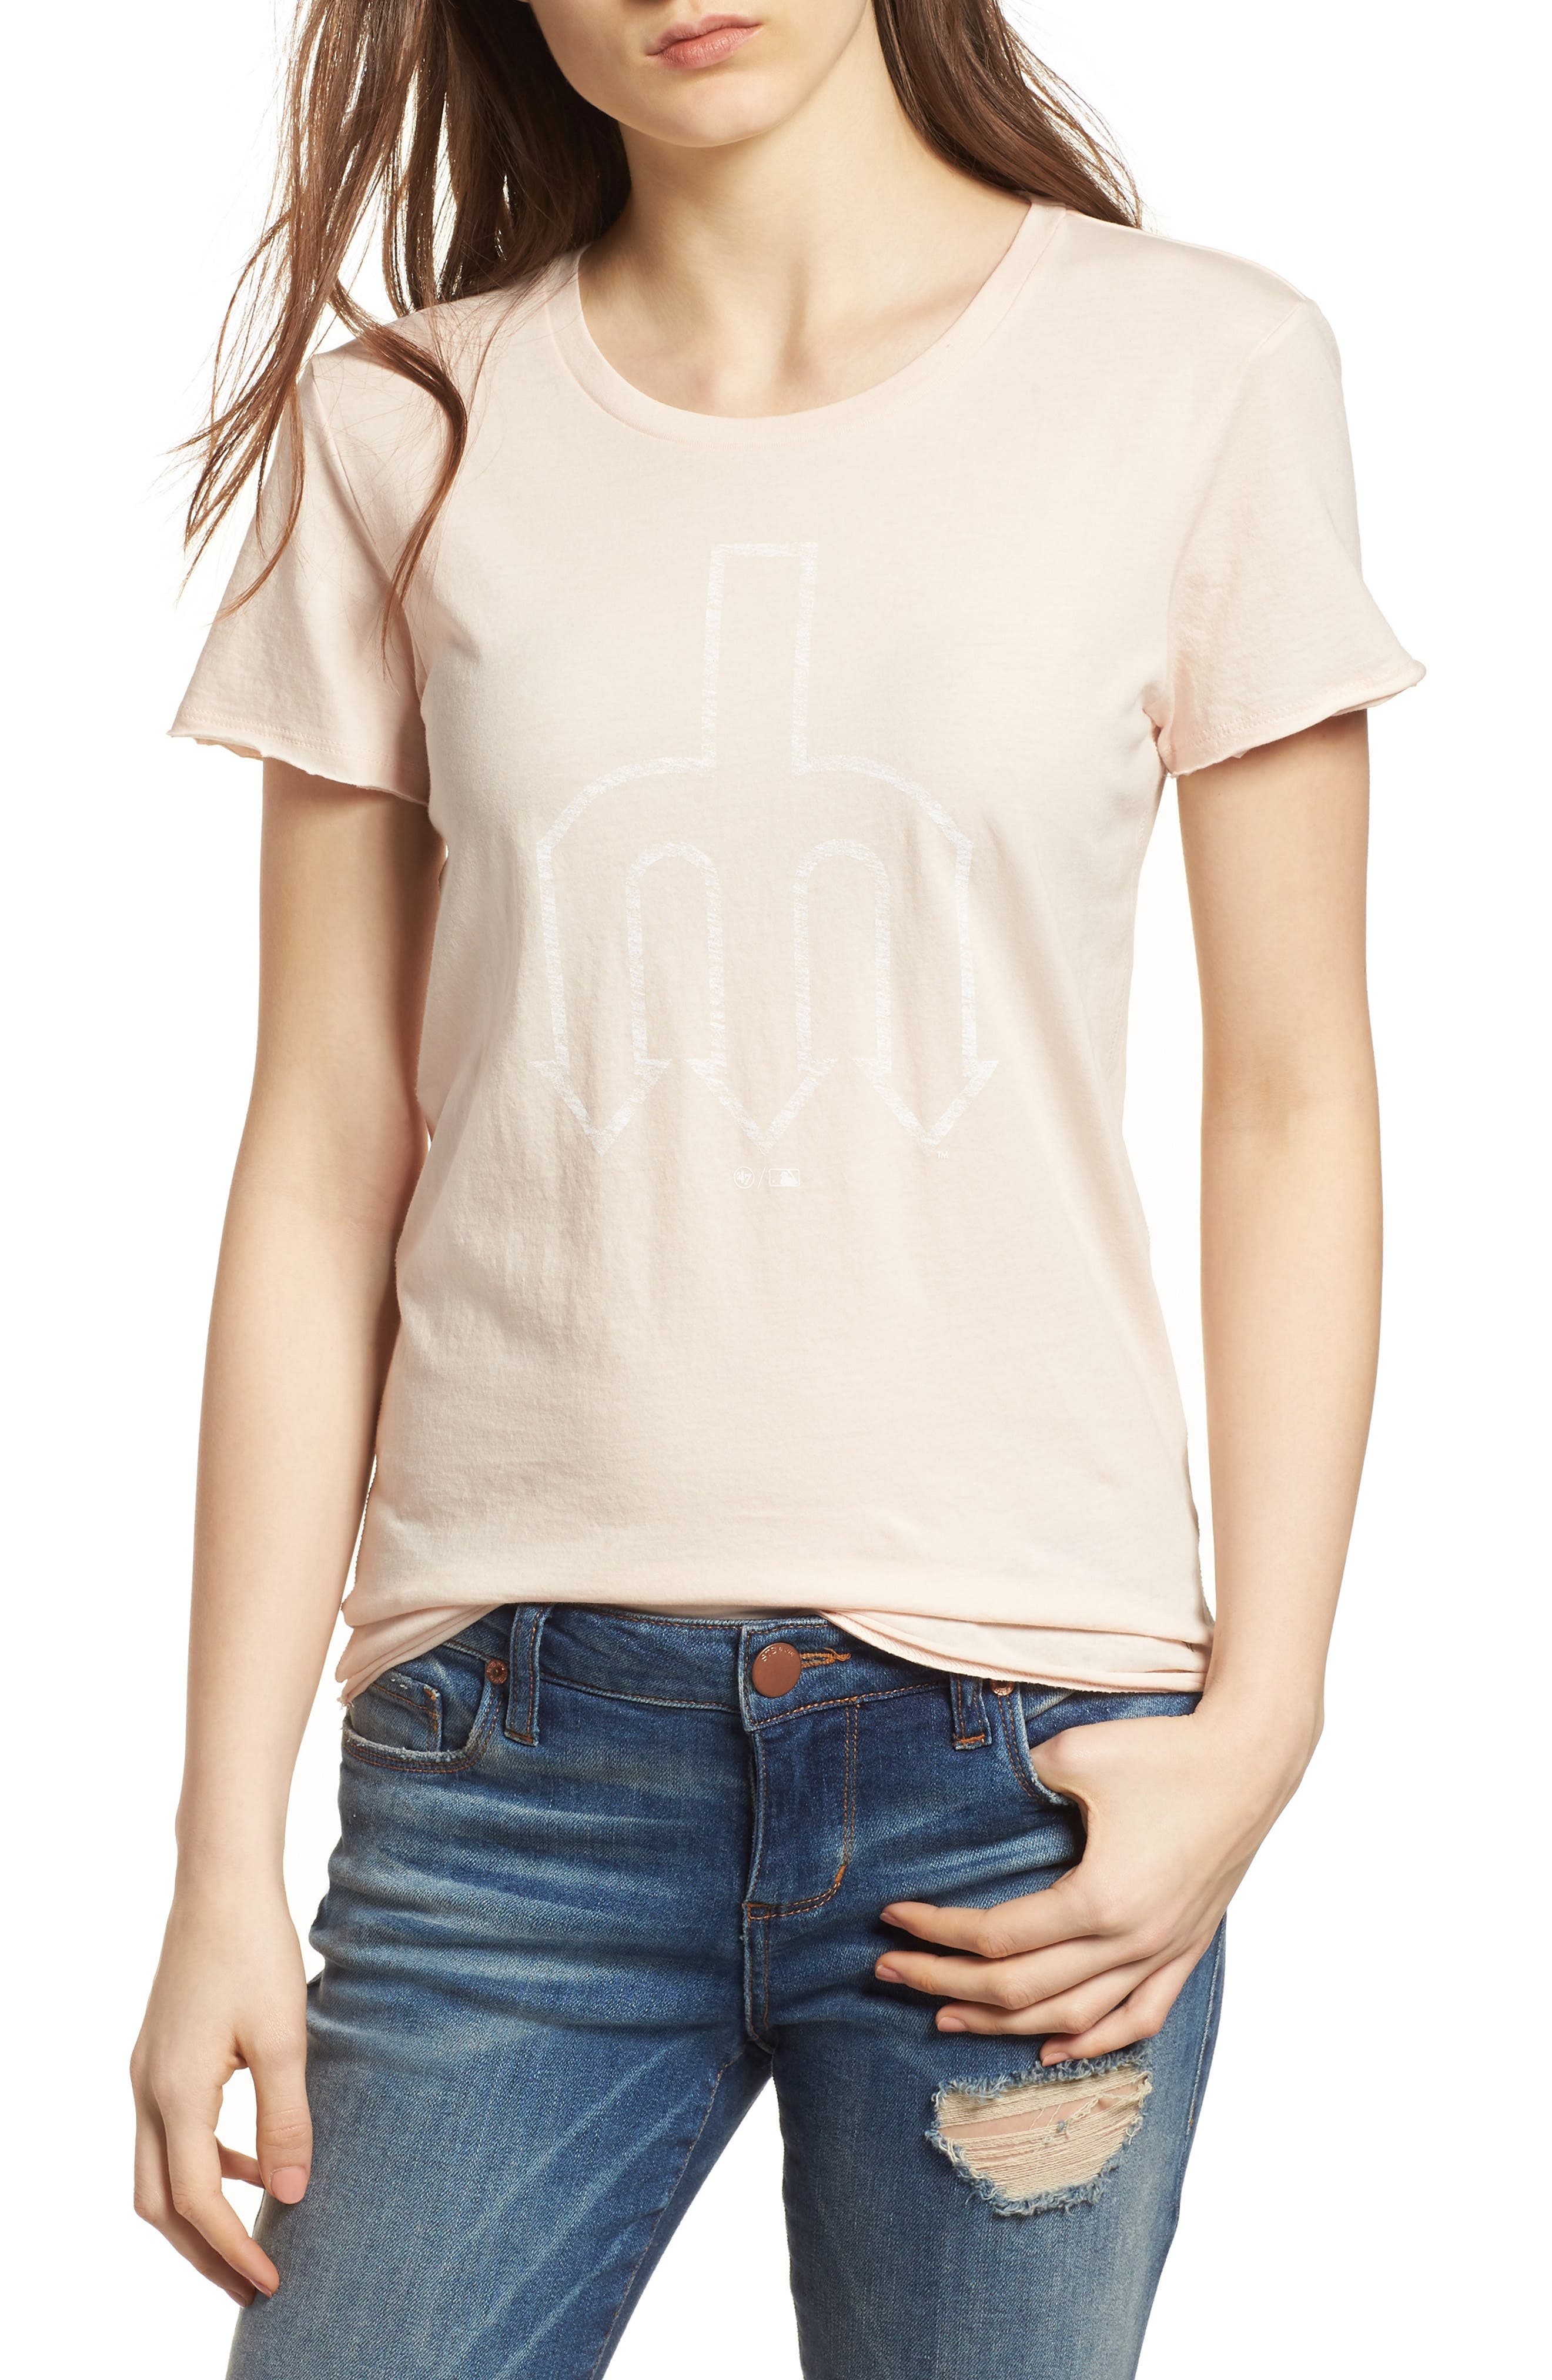 Seattle Mariners Fader Letter Tee,                             Main thumbnail 1, color,                             Blush